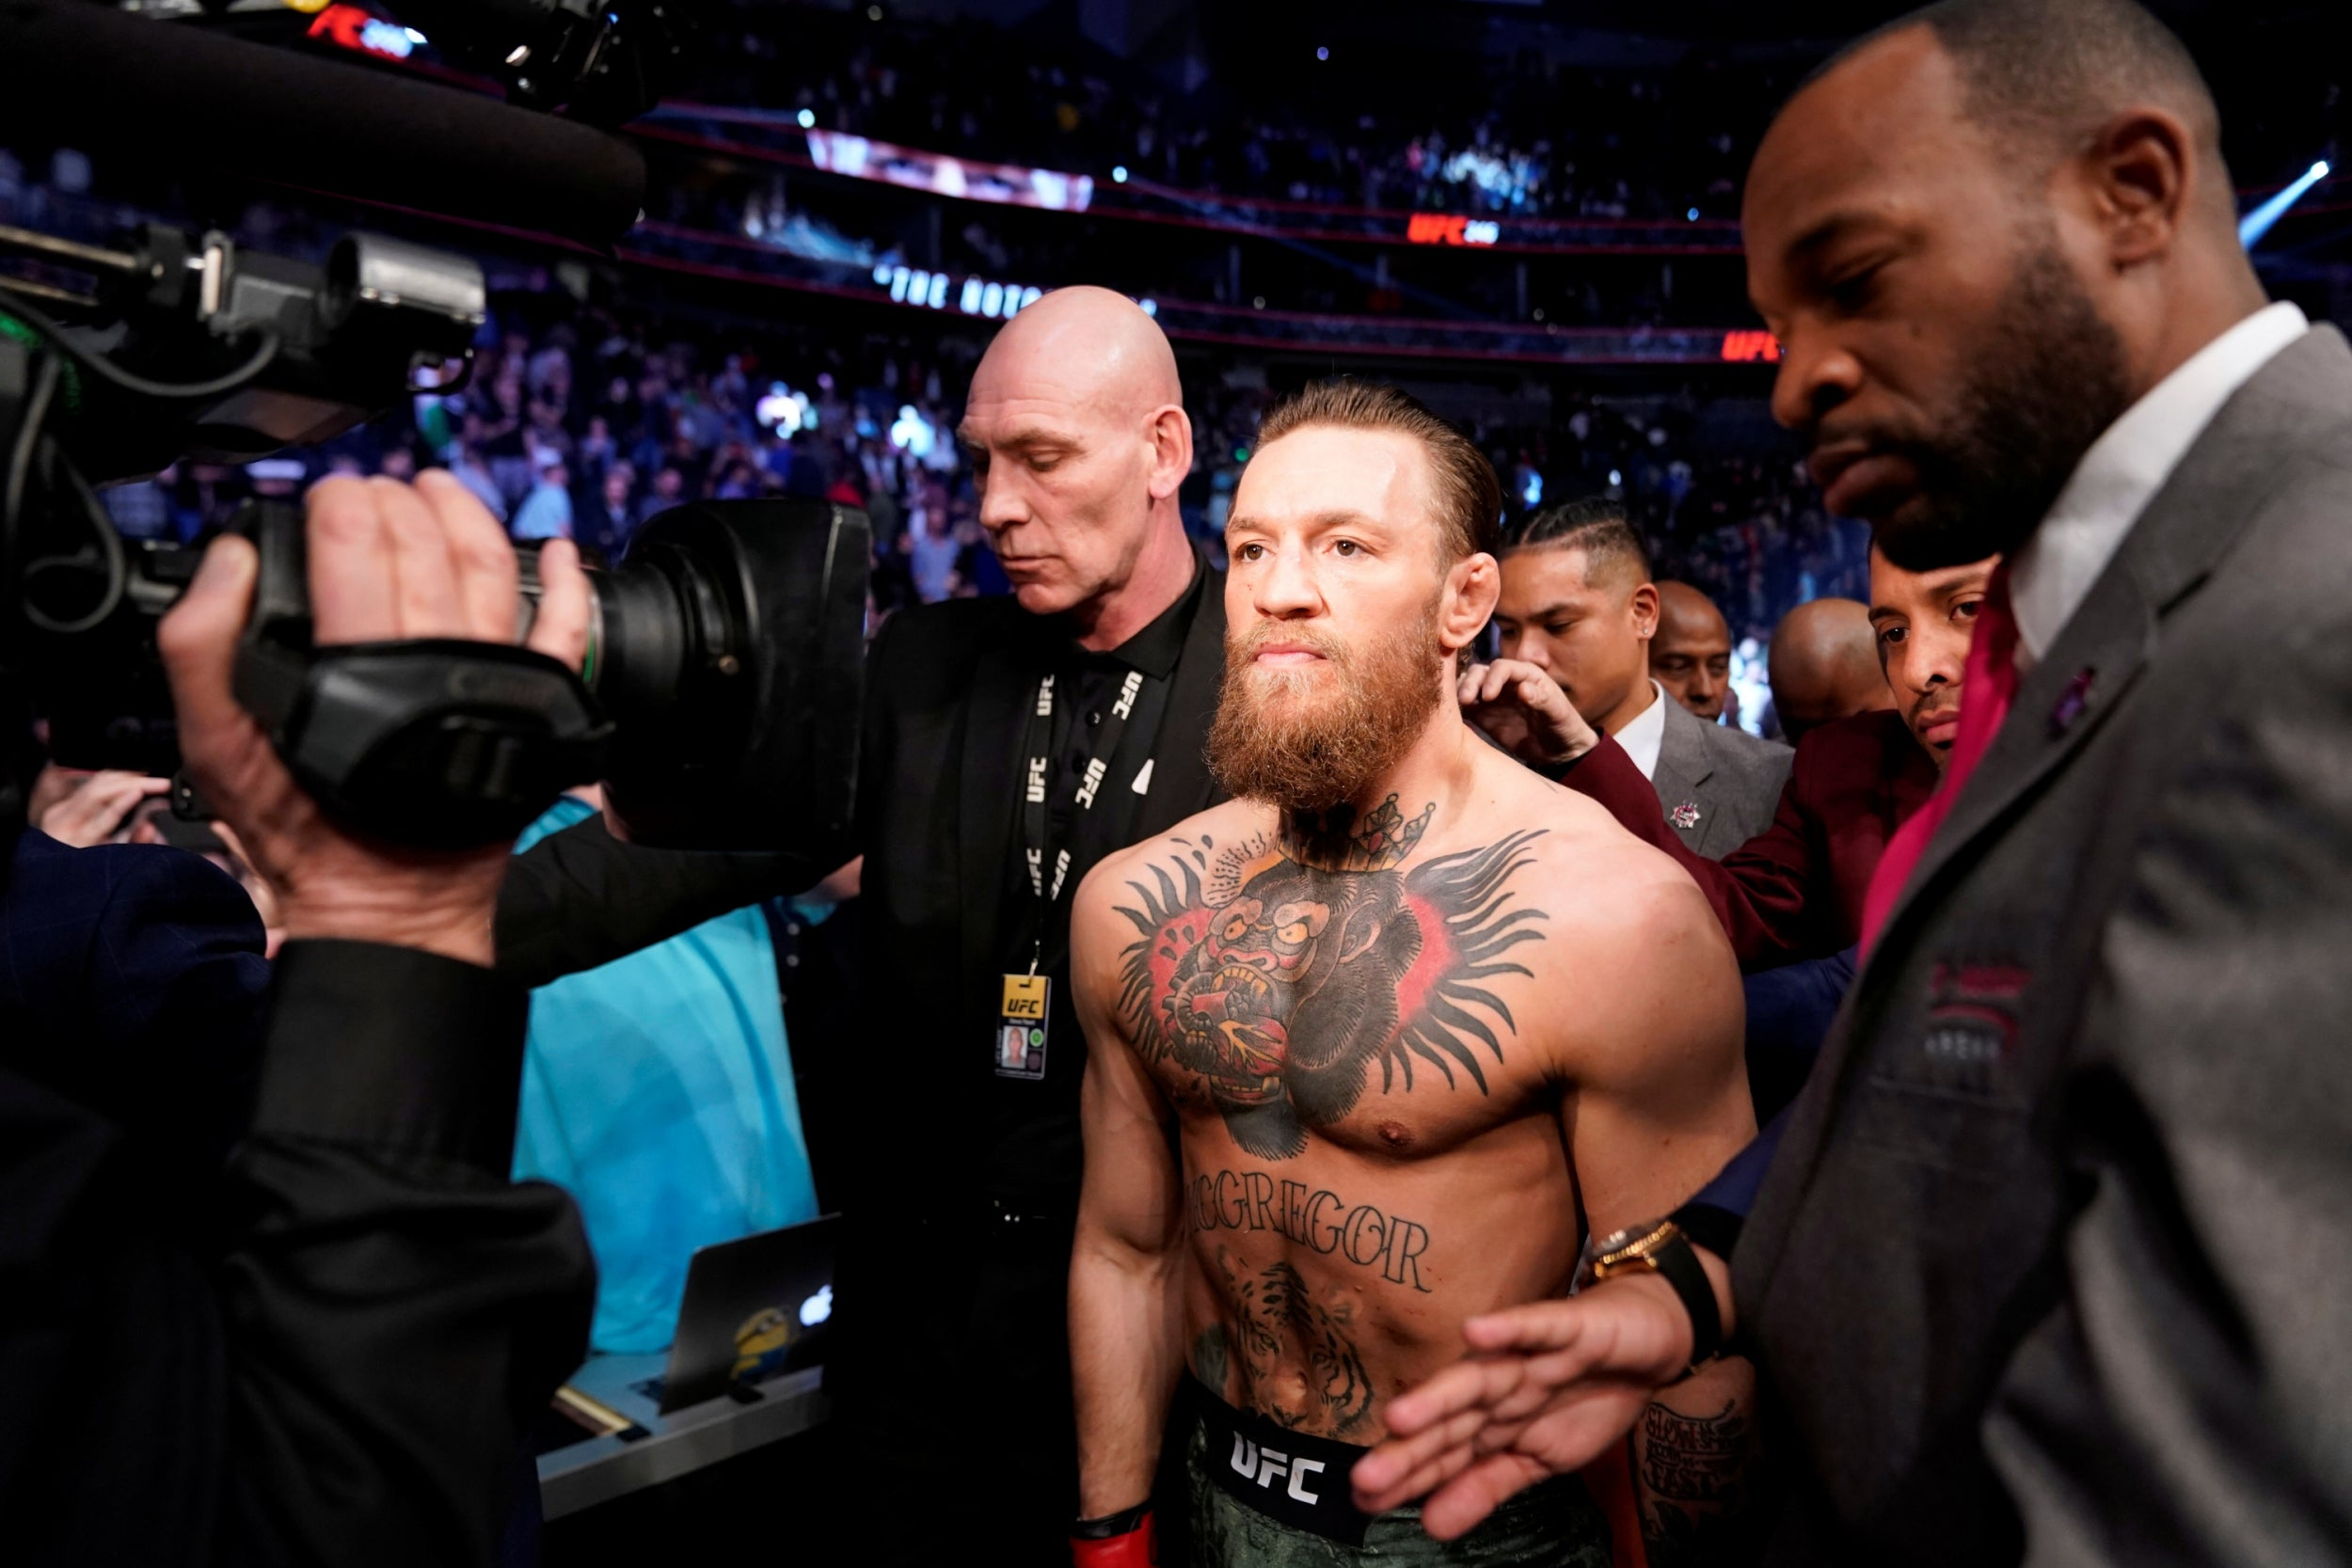 Floyd Mayweather teases Conor McGregor rematch after Irishman's UFC 246 win